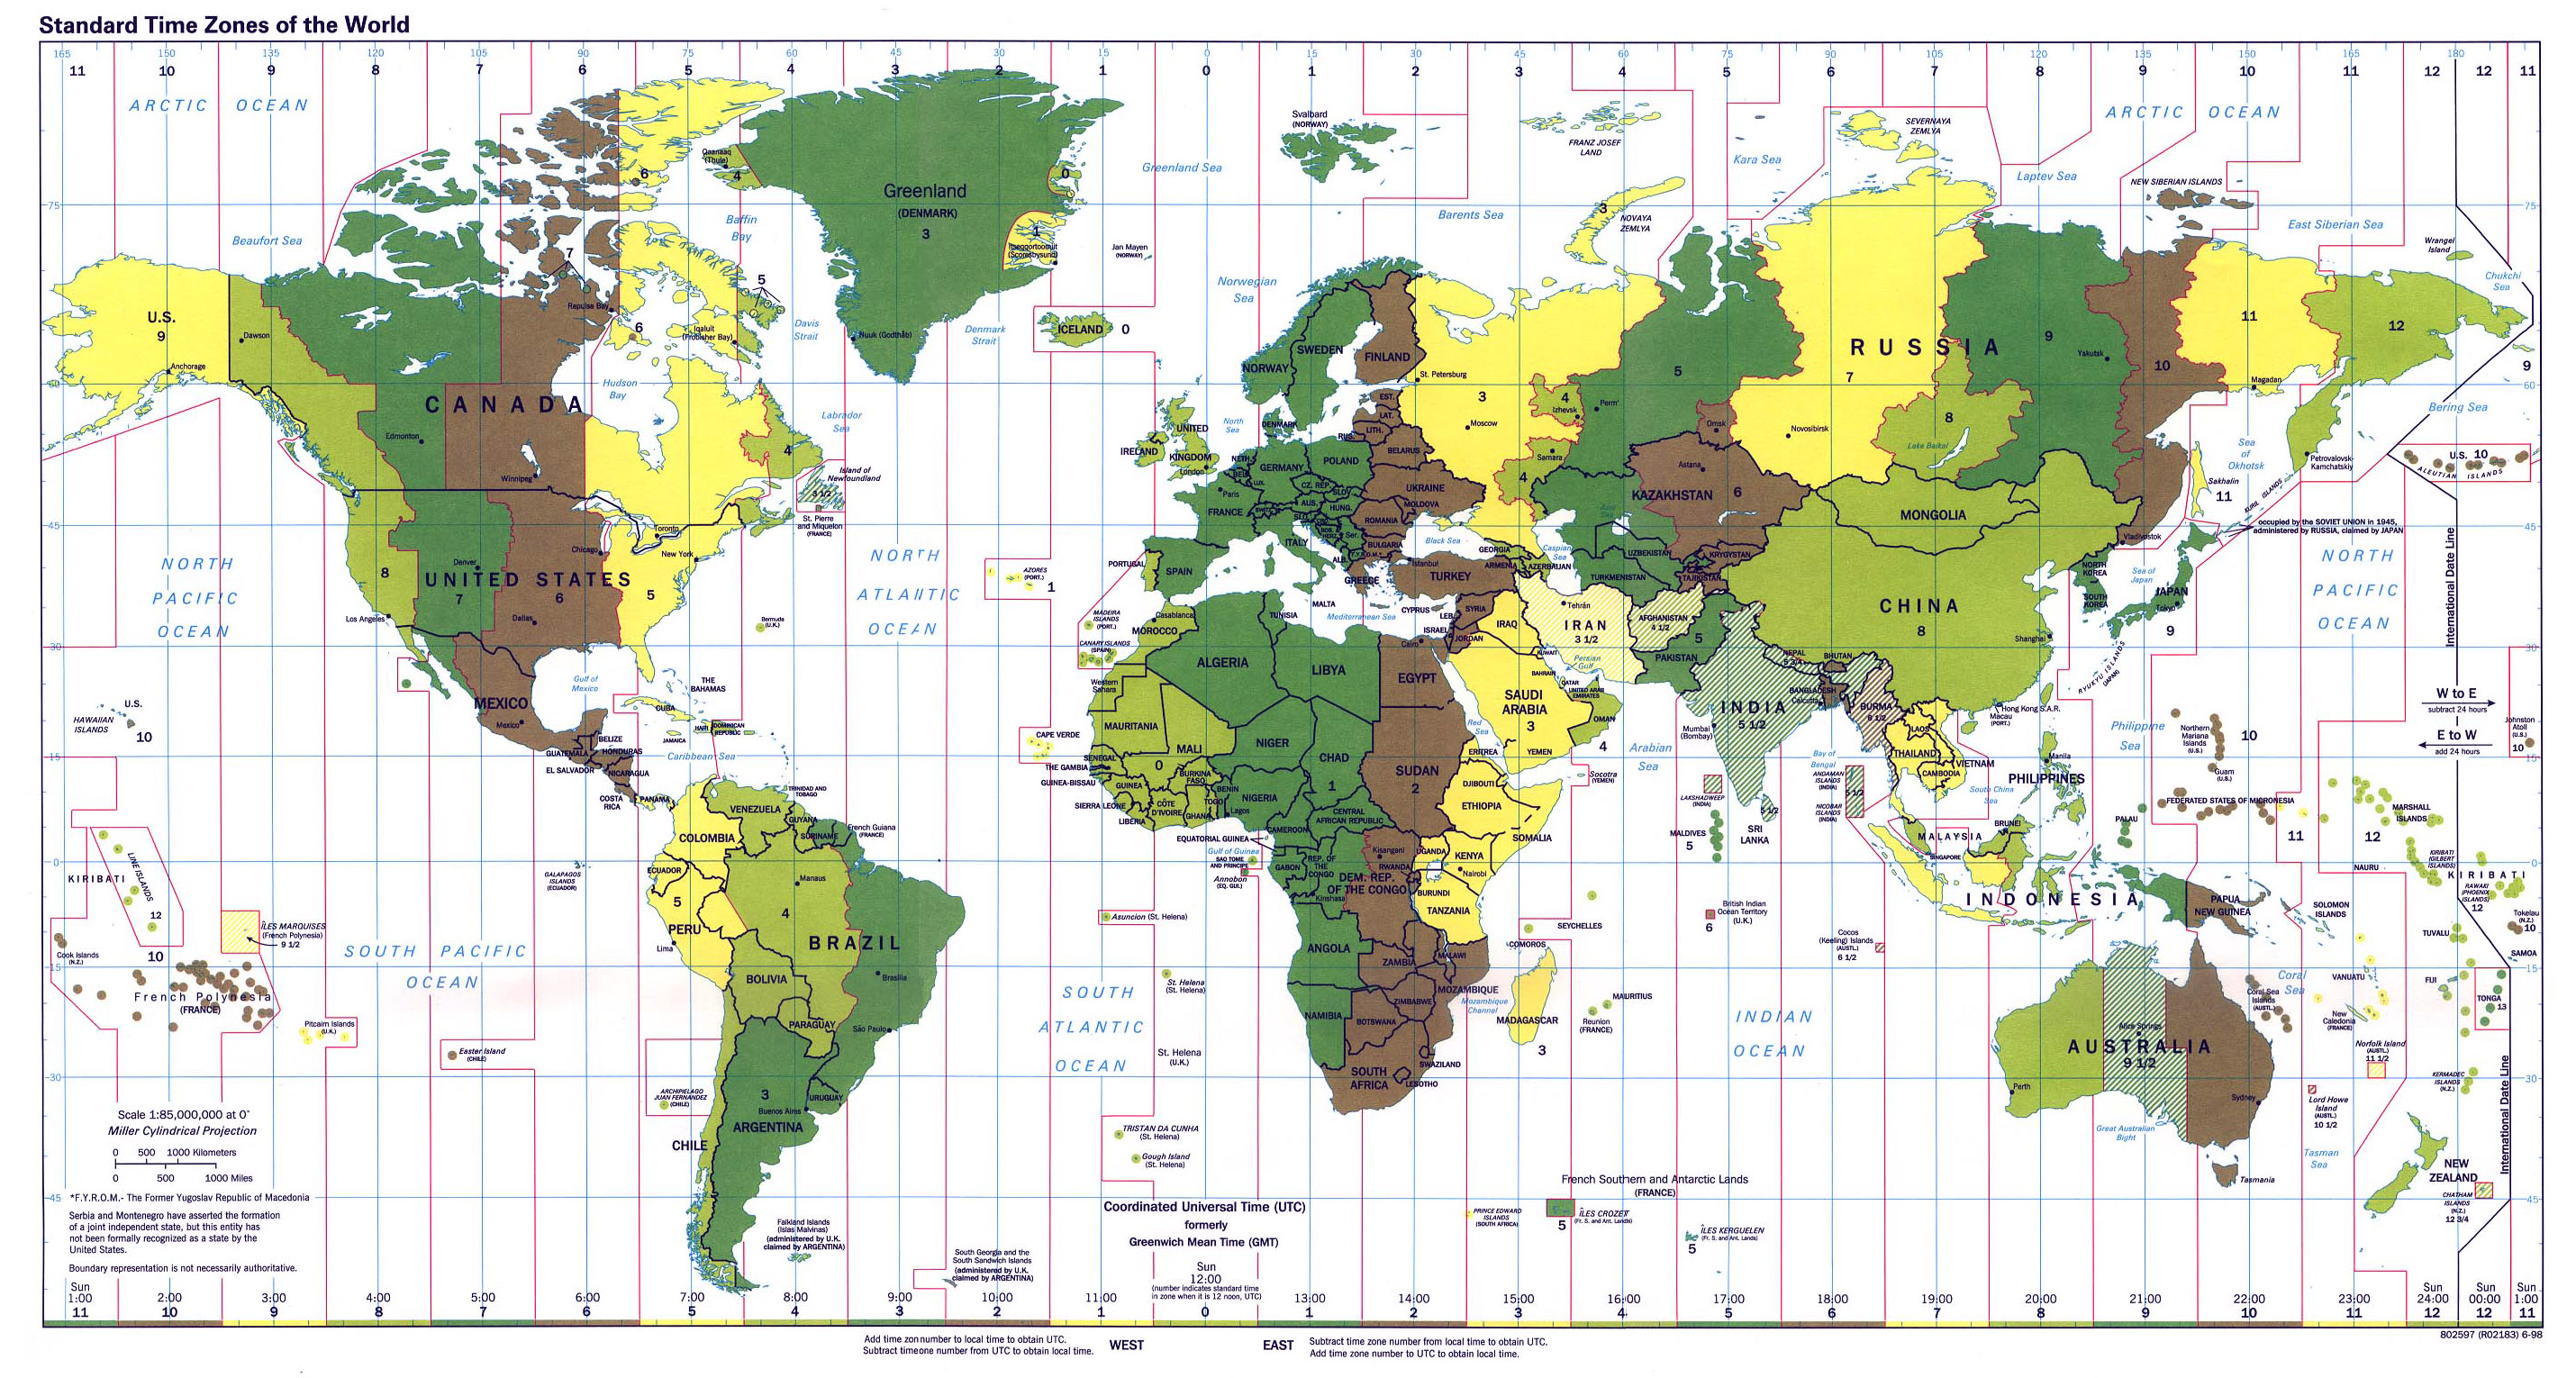 Large map of Time Zones of the World 1998